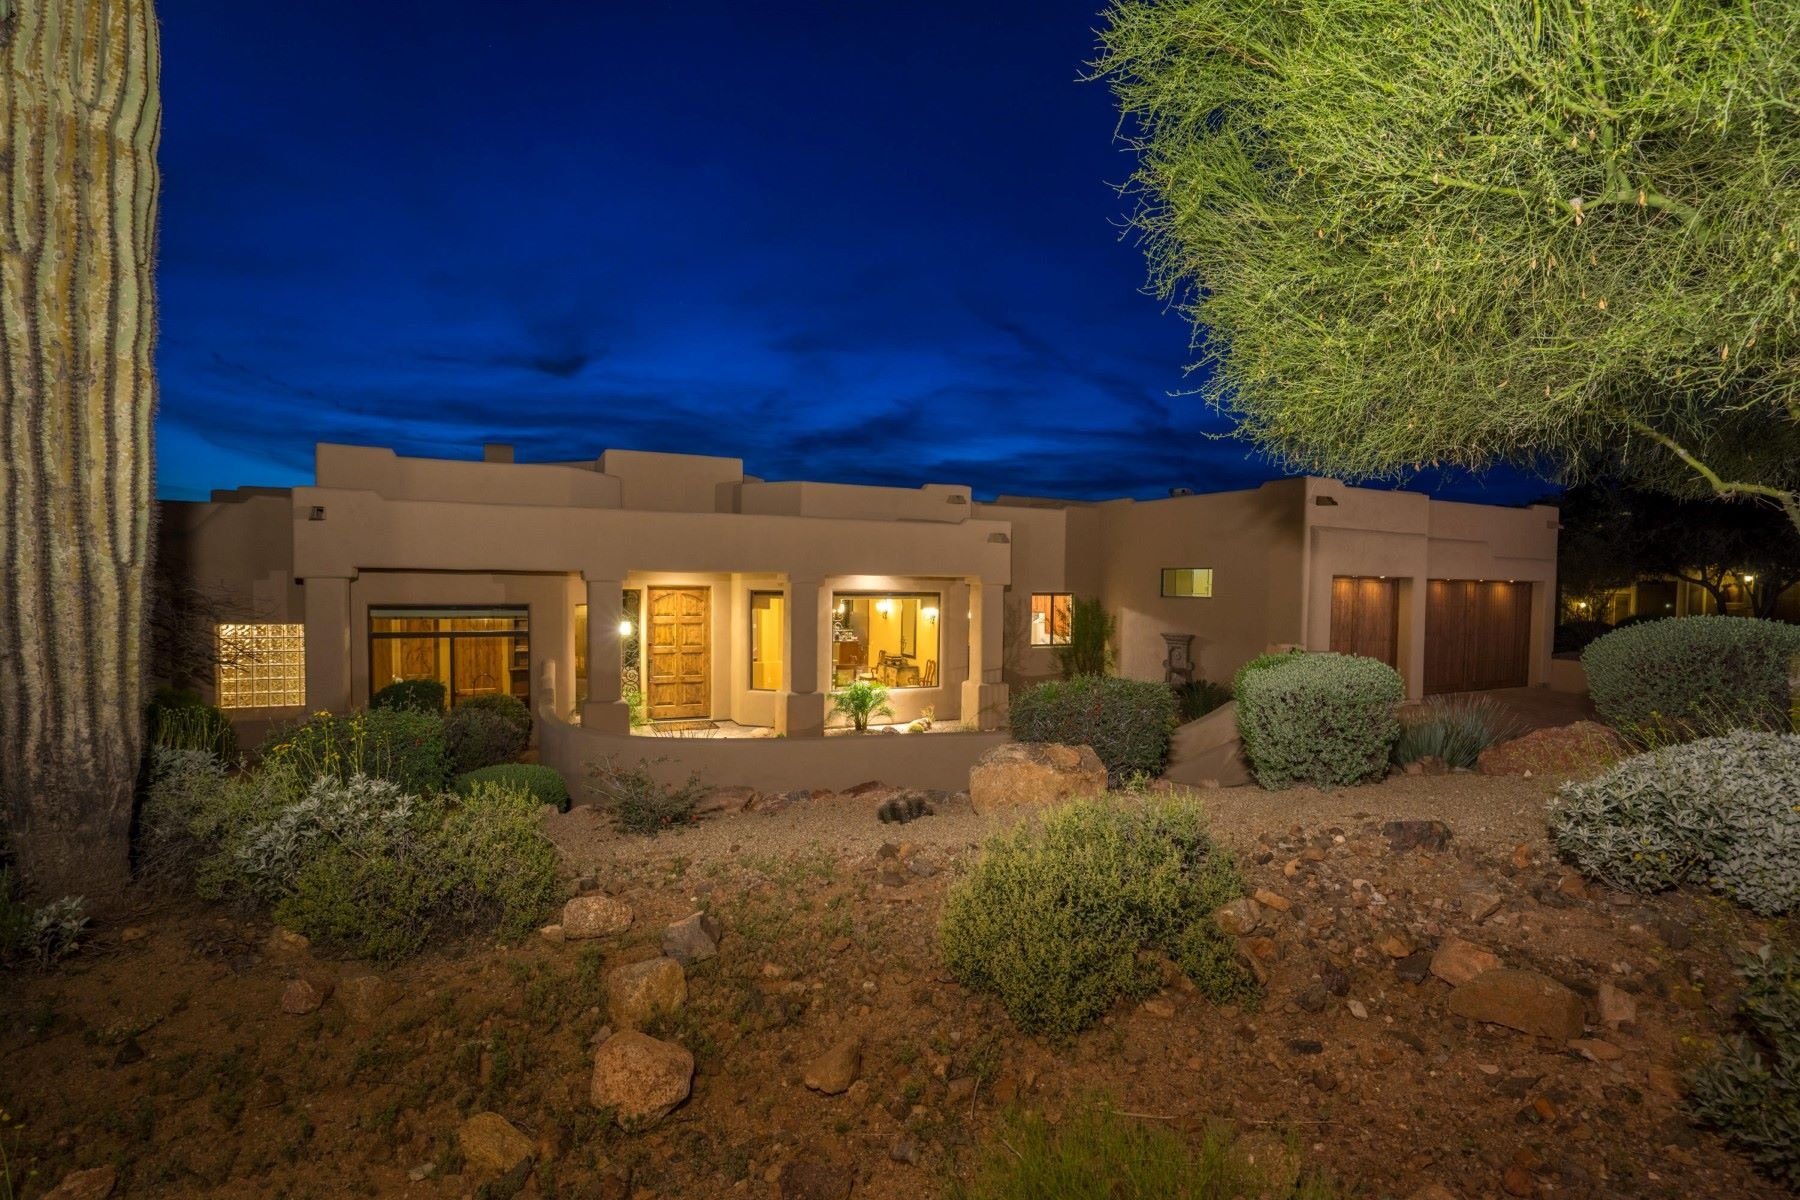 Single Family Home for Sale at Spectacular single level home nestled in FireRock Country Club 9036 N Fireridge Trl Fountain Hills, Arizona, 85268 United States